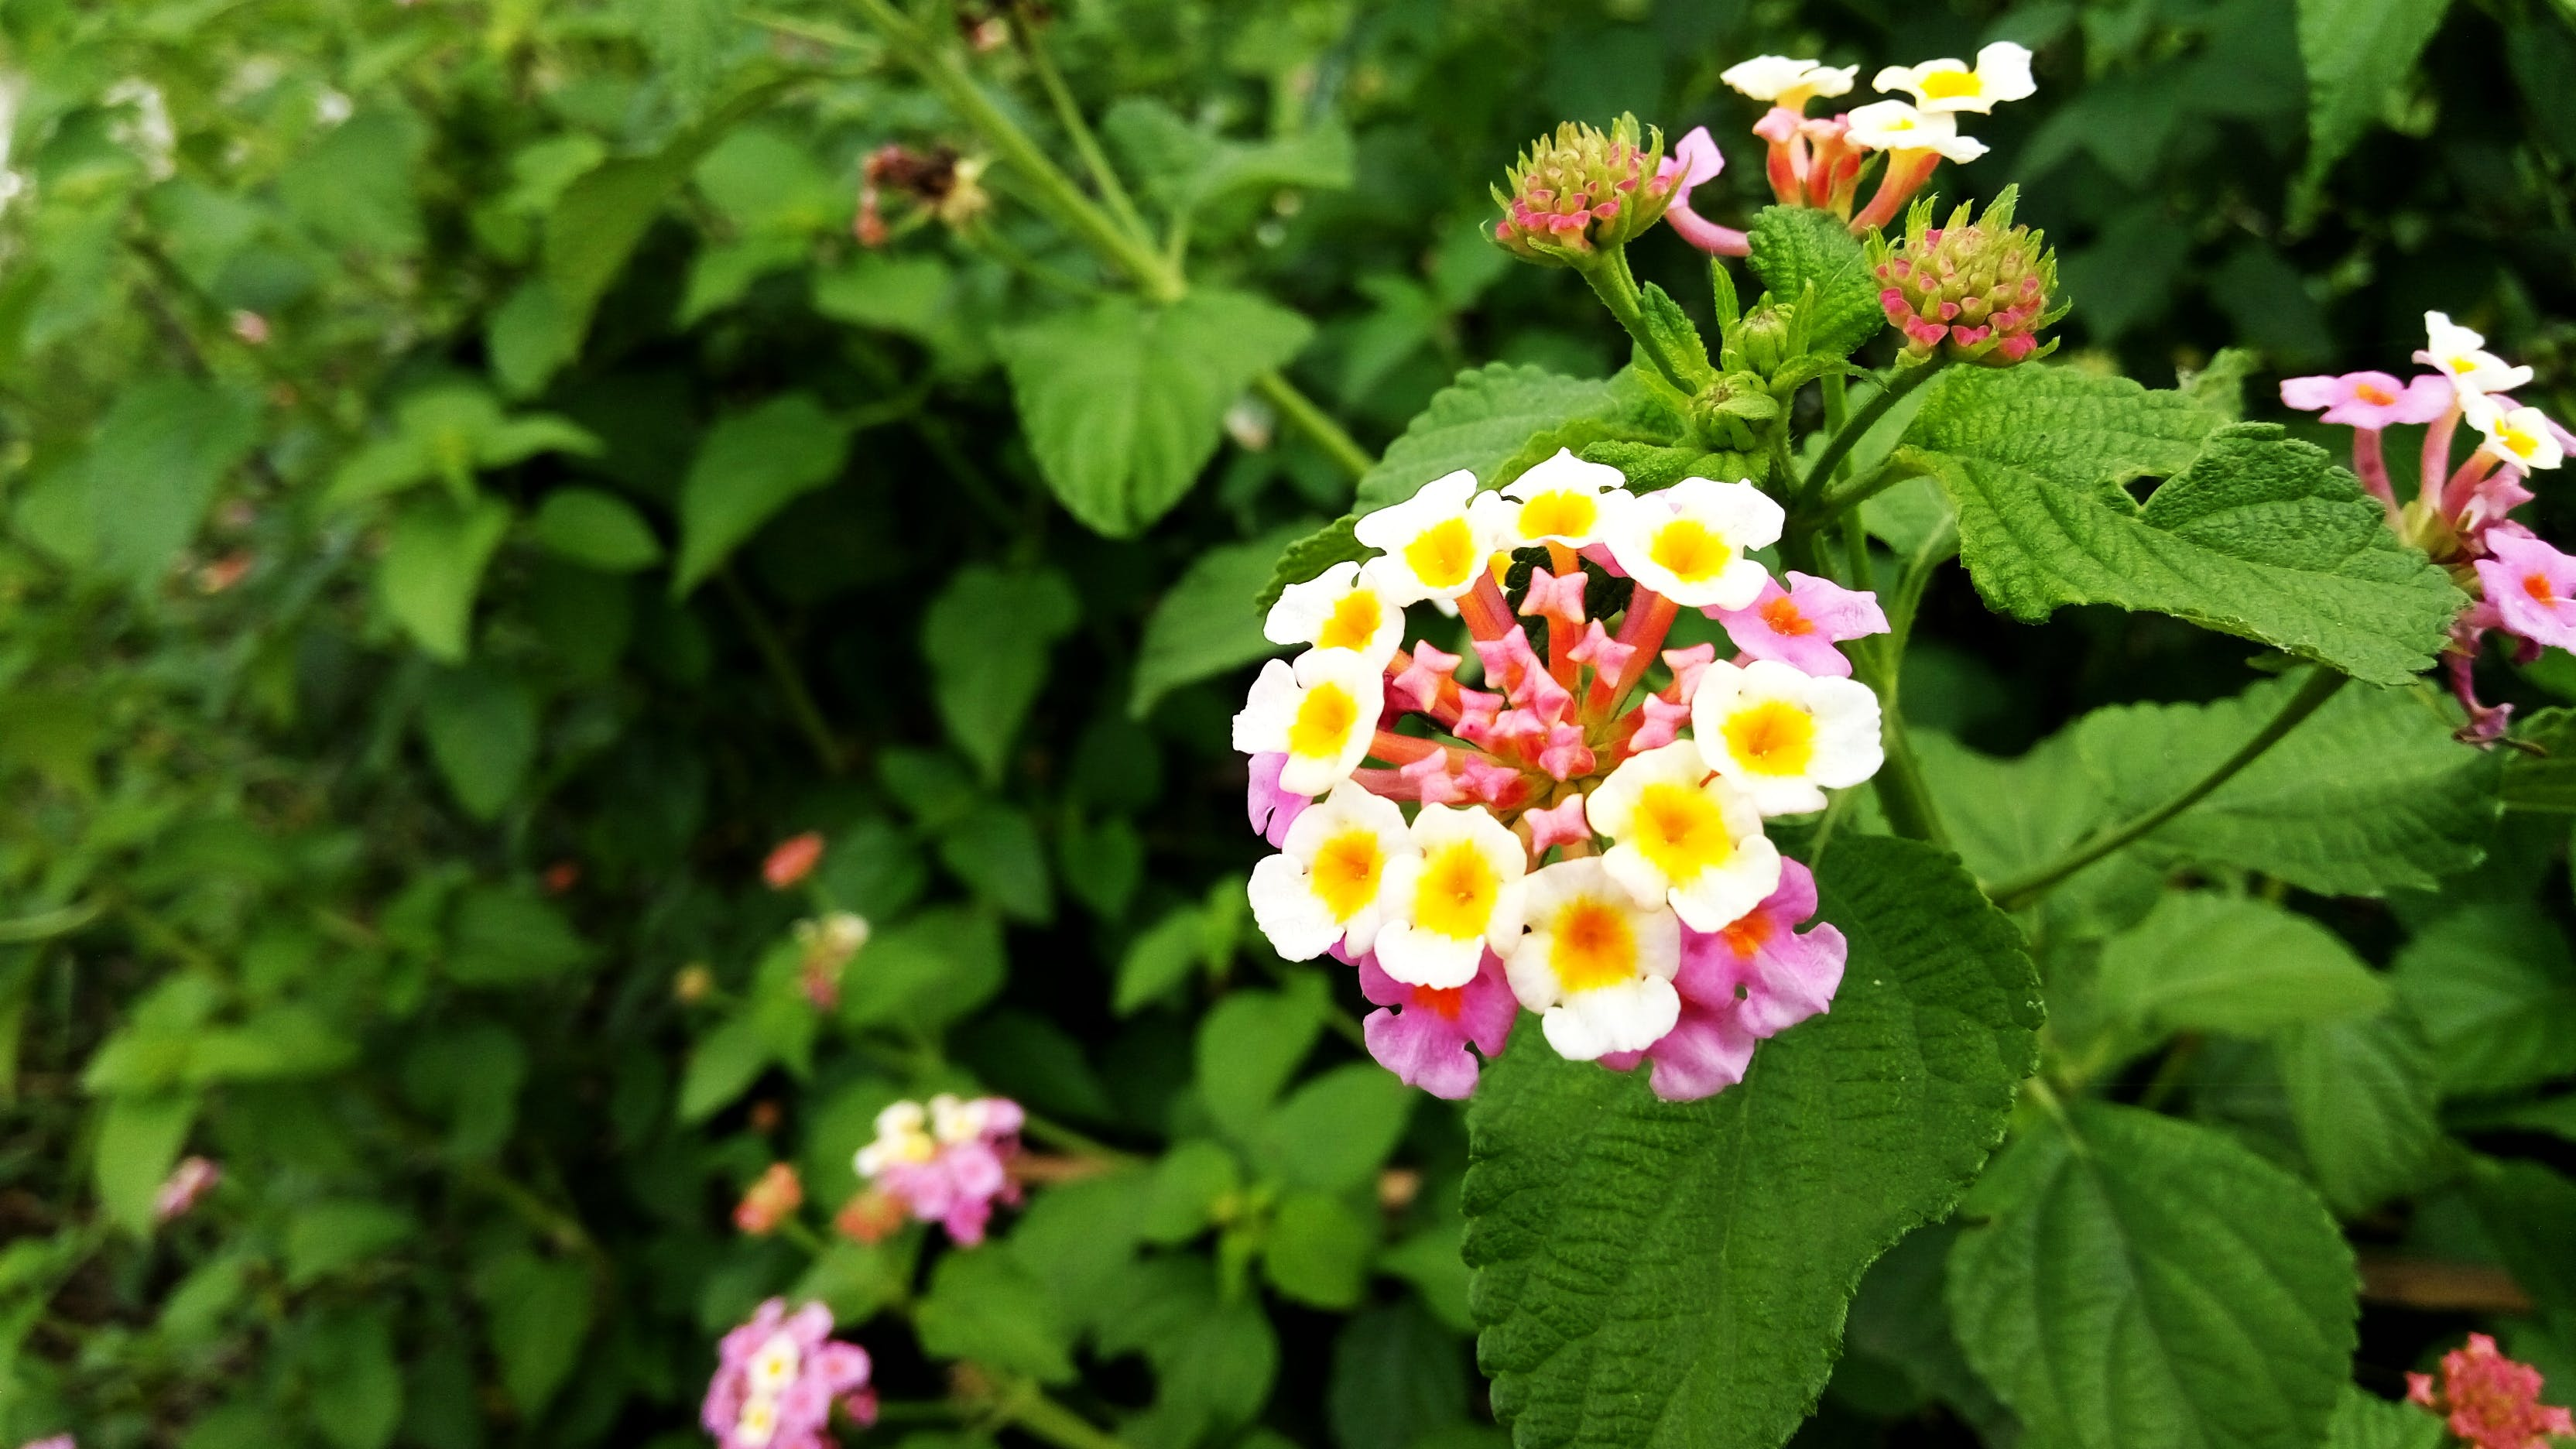 Yellow White and Pink Petaled Flower